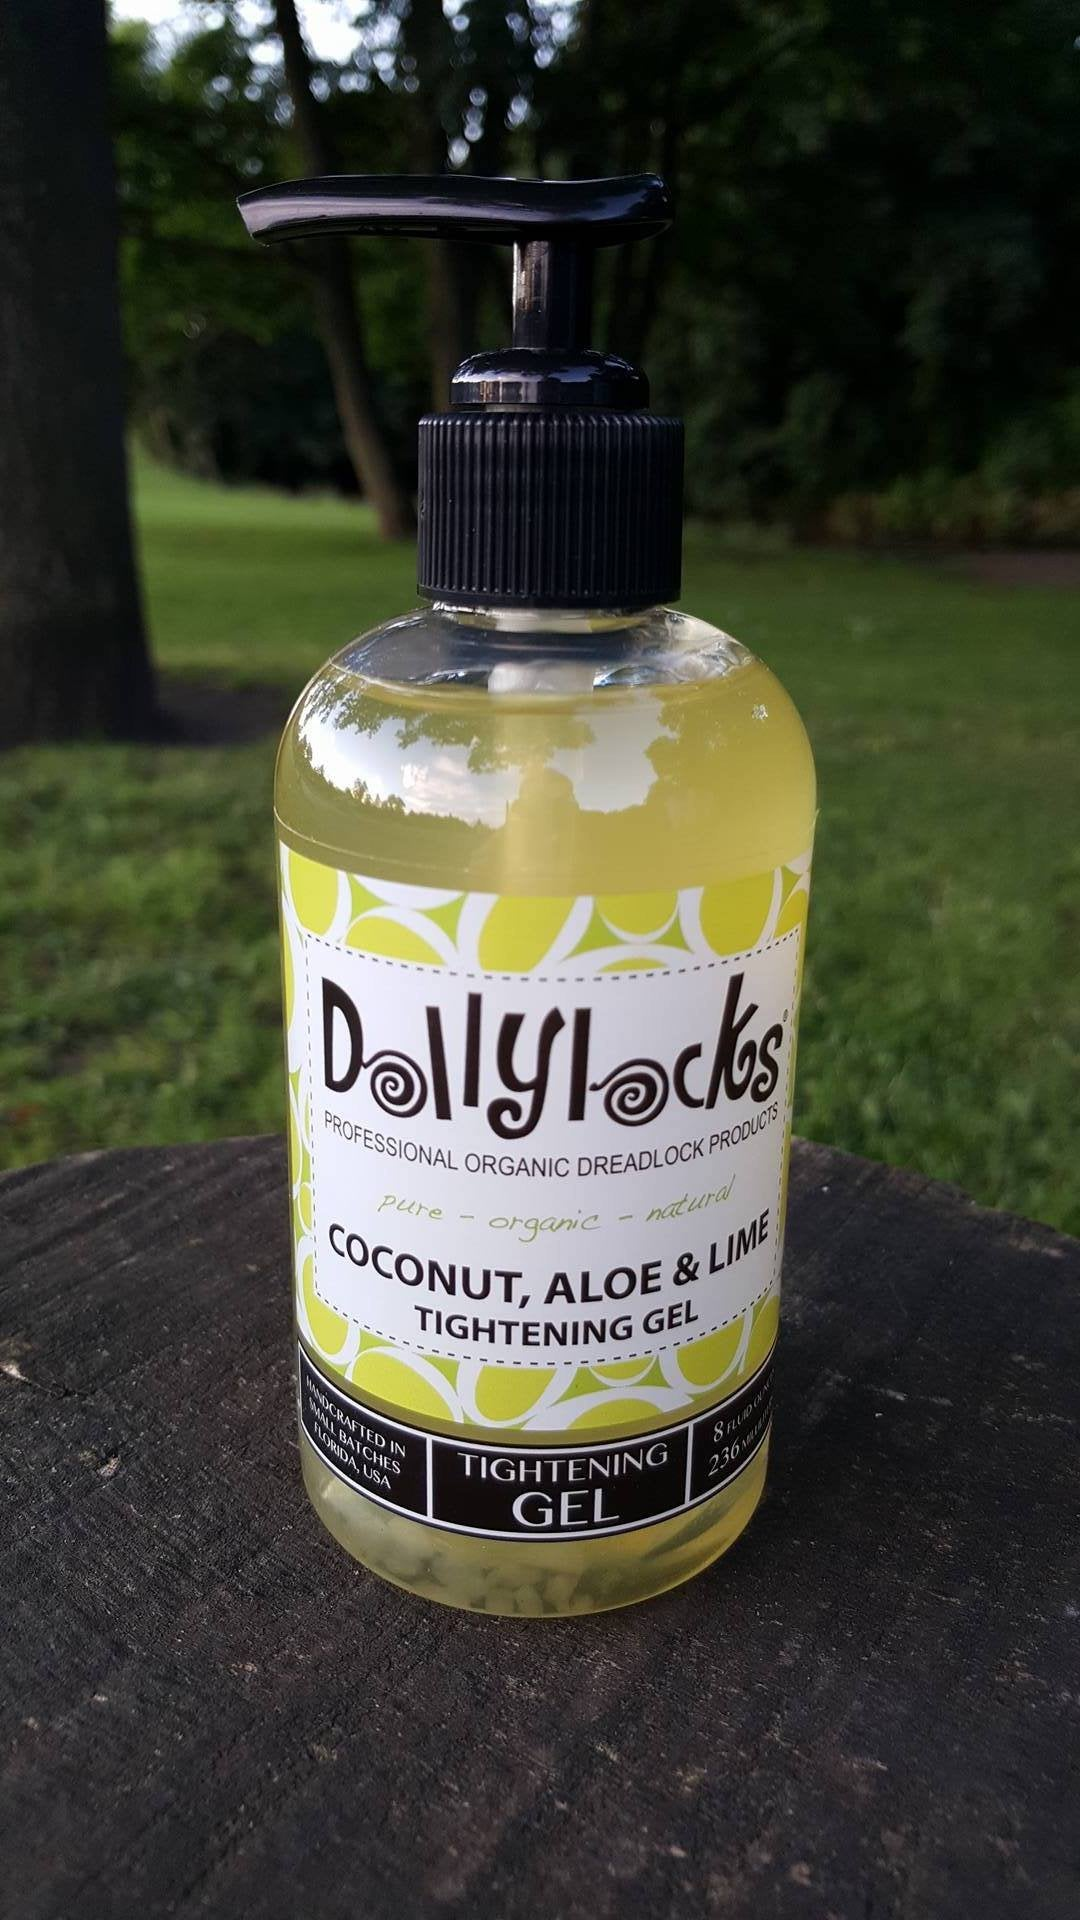 Dollylocks - Dreadlocks Gel Coconut, Aloe & Lime (8oz/236ml)